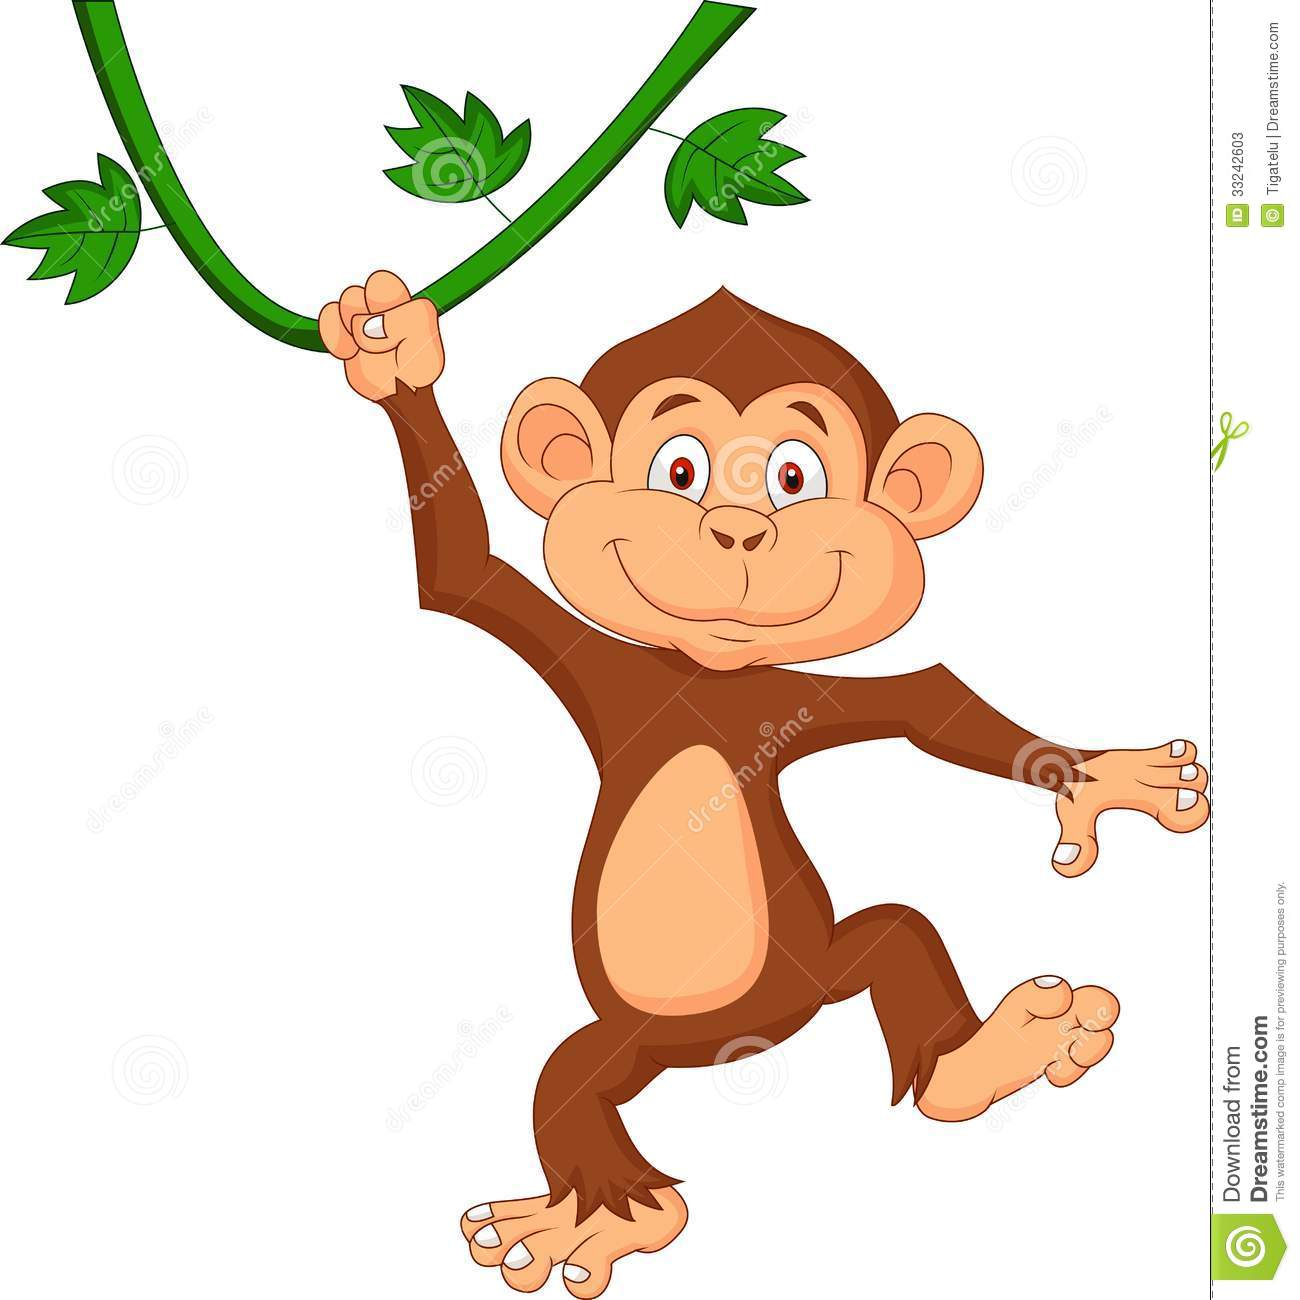 clipart monkey hanging from tree - photo #9